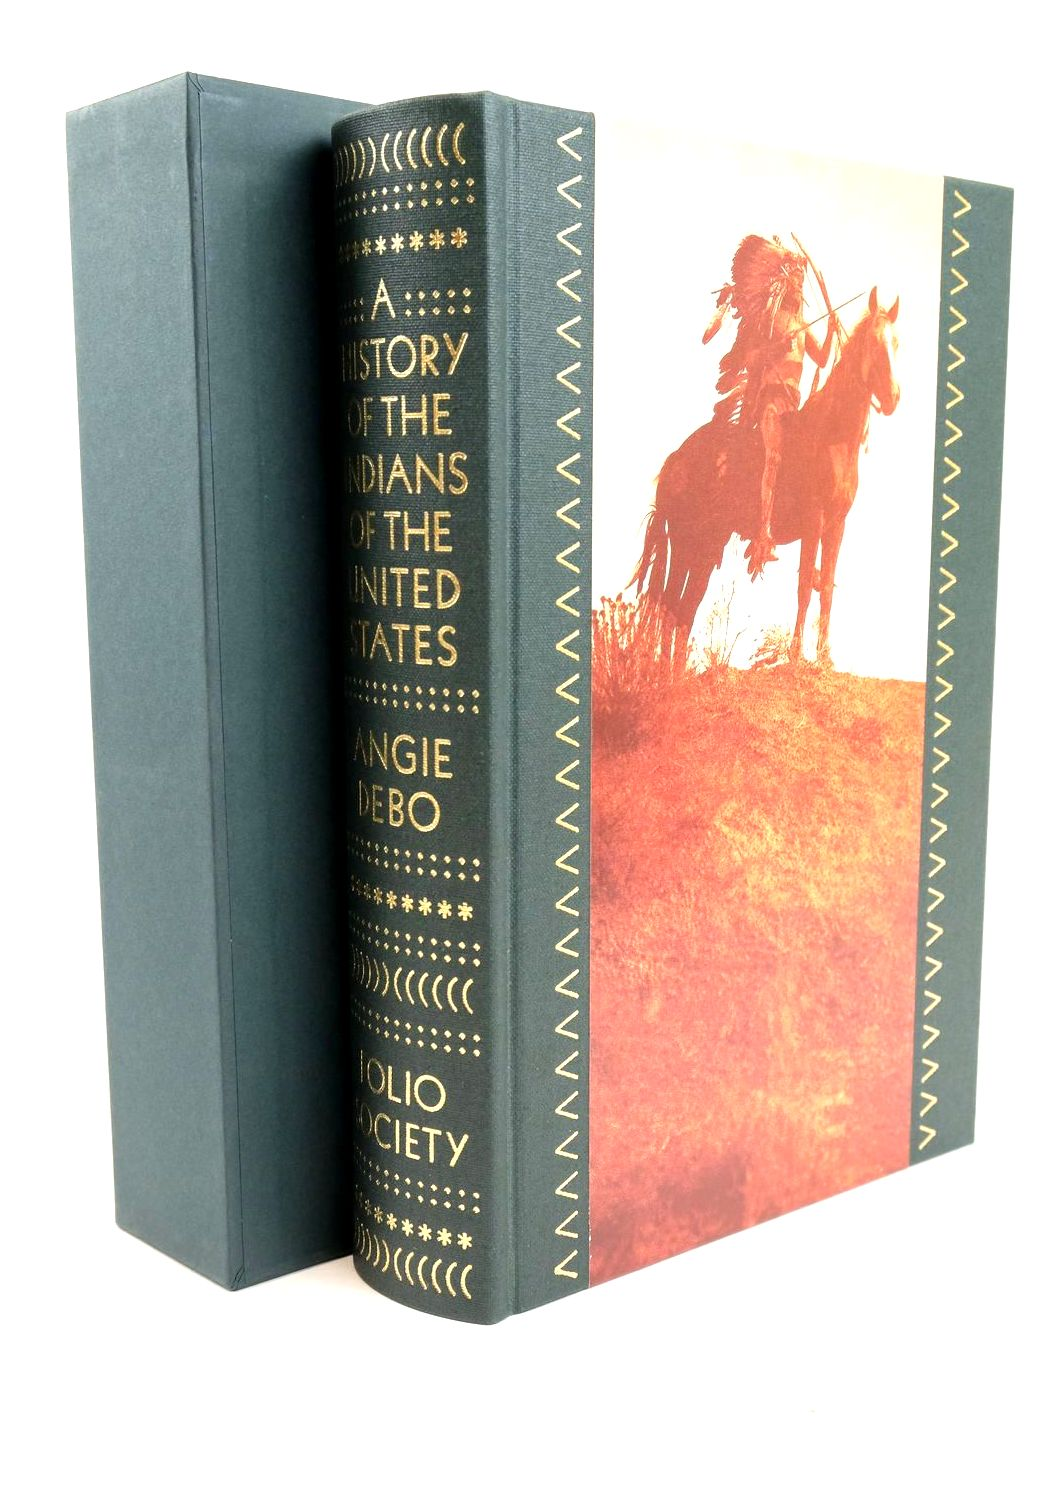 Photo of A HISTORY OF THE INDIANS OF THE UNITED STATES written by Debo, Angie published by Folio Society (STOCK CODE: 1318900)  for sale by Stella & Rose's Books